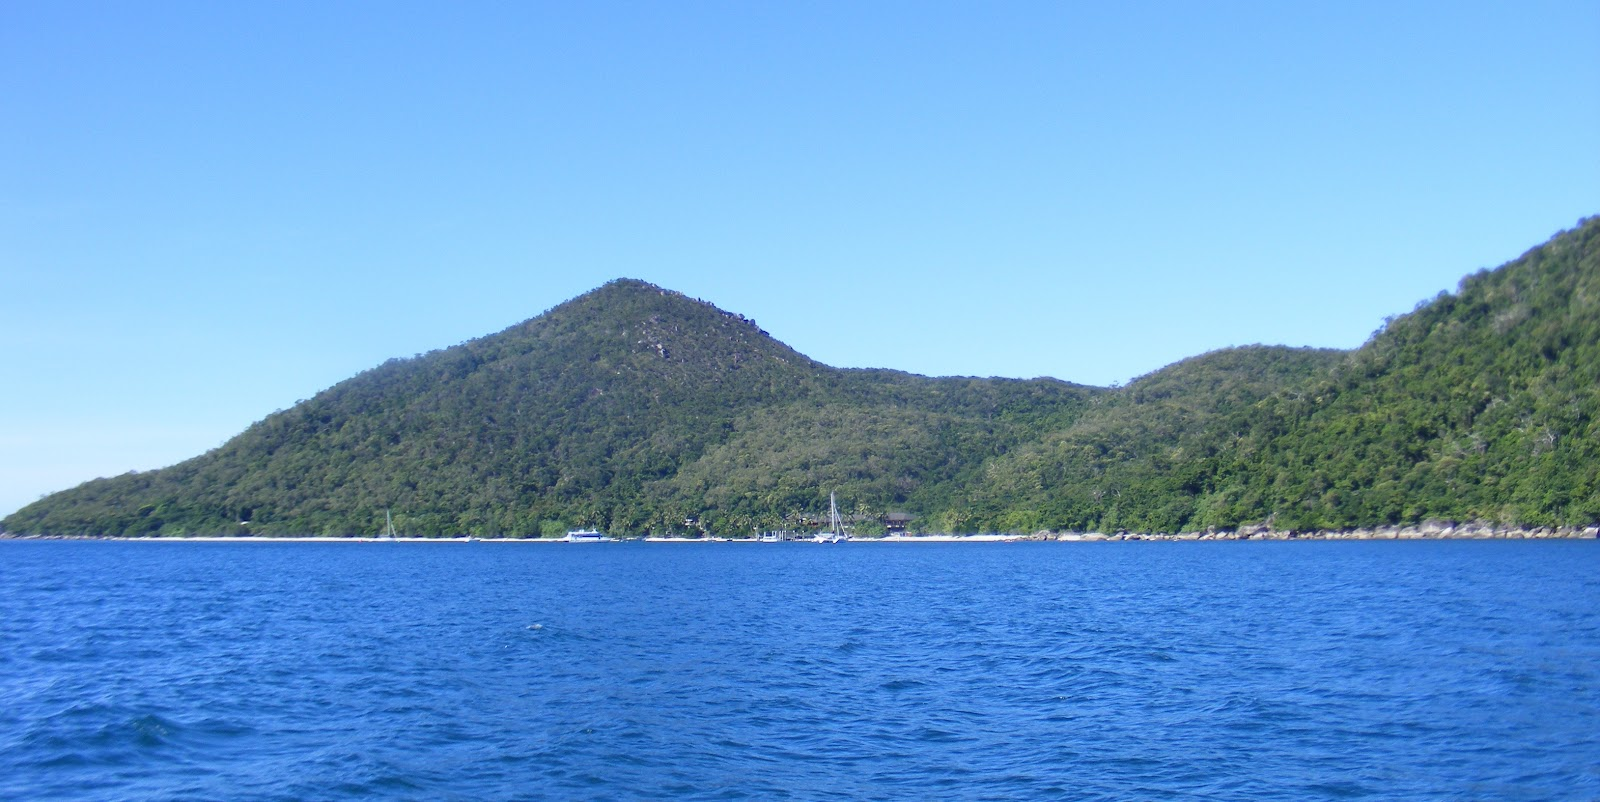 Dunk Island Places To Stay: S.V. GOODONYA: DUNK ISLAND TO FITZROY ISLAND